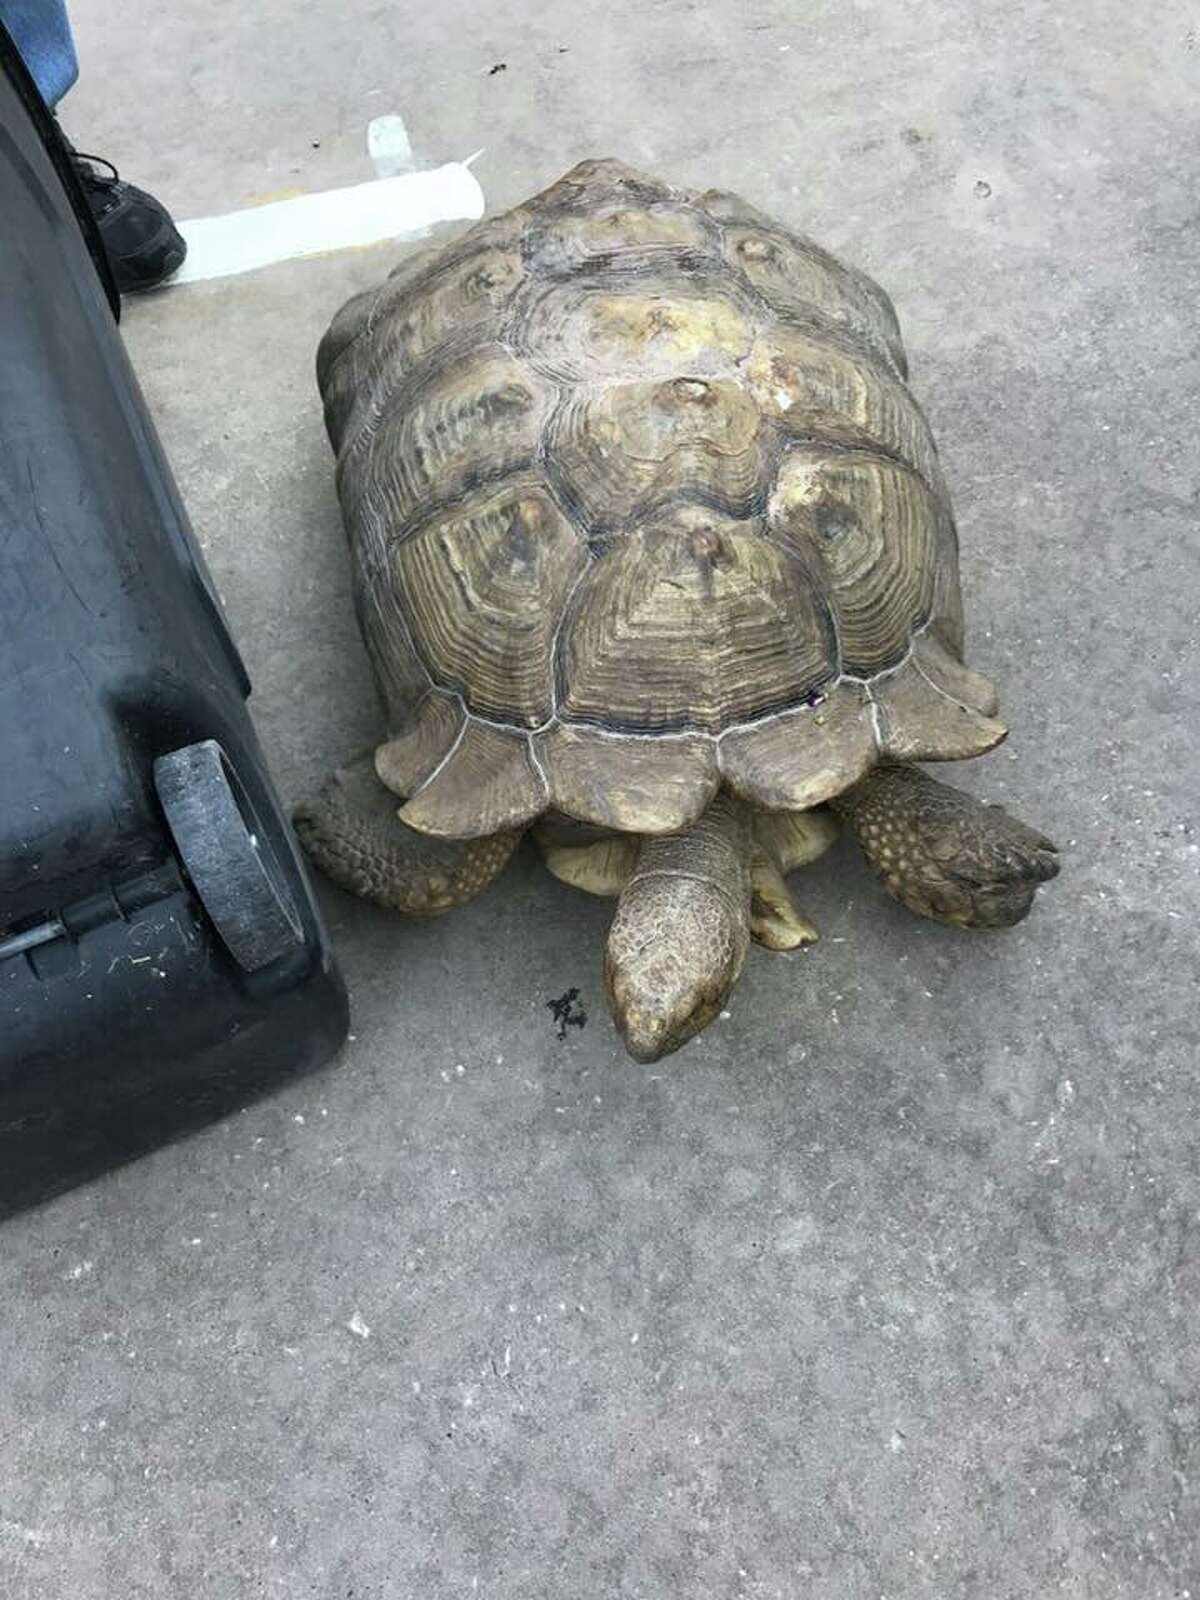 Montgomery County Constable Pct. 4 and the Texas Game Warden's office teamed up to rescue a large tortoise found meandering around in Porter on Thursday morning.